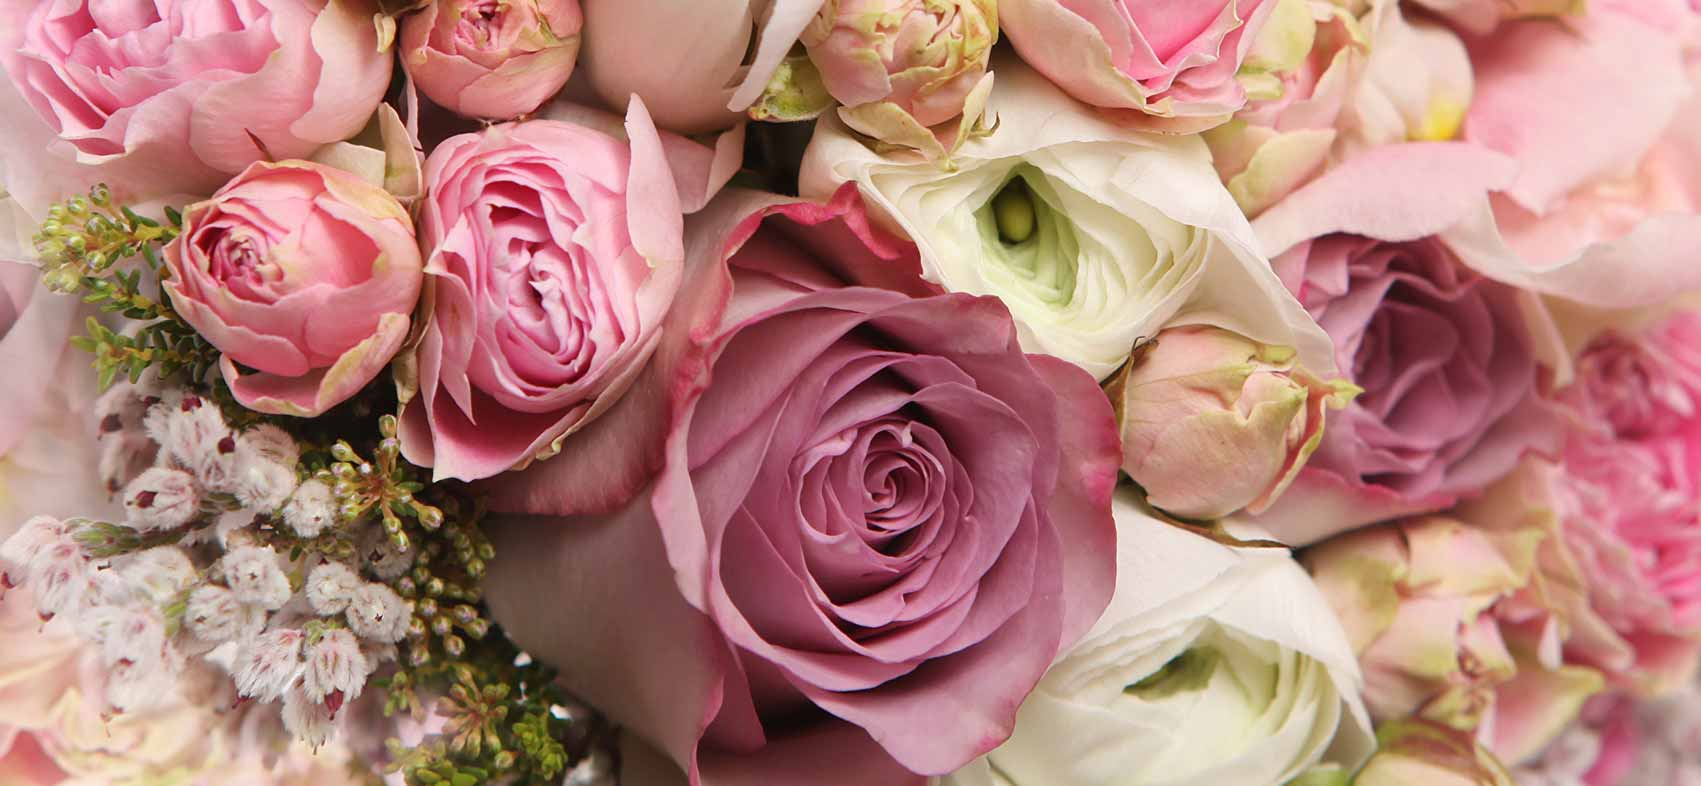 roses-closeup-paralax Laguna Hills Flower Delivery | Laguna Hills Florist | Same Day Flower Deliveries Laguna Hills